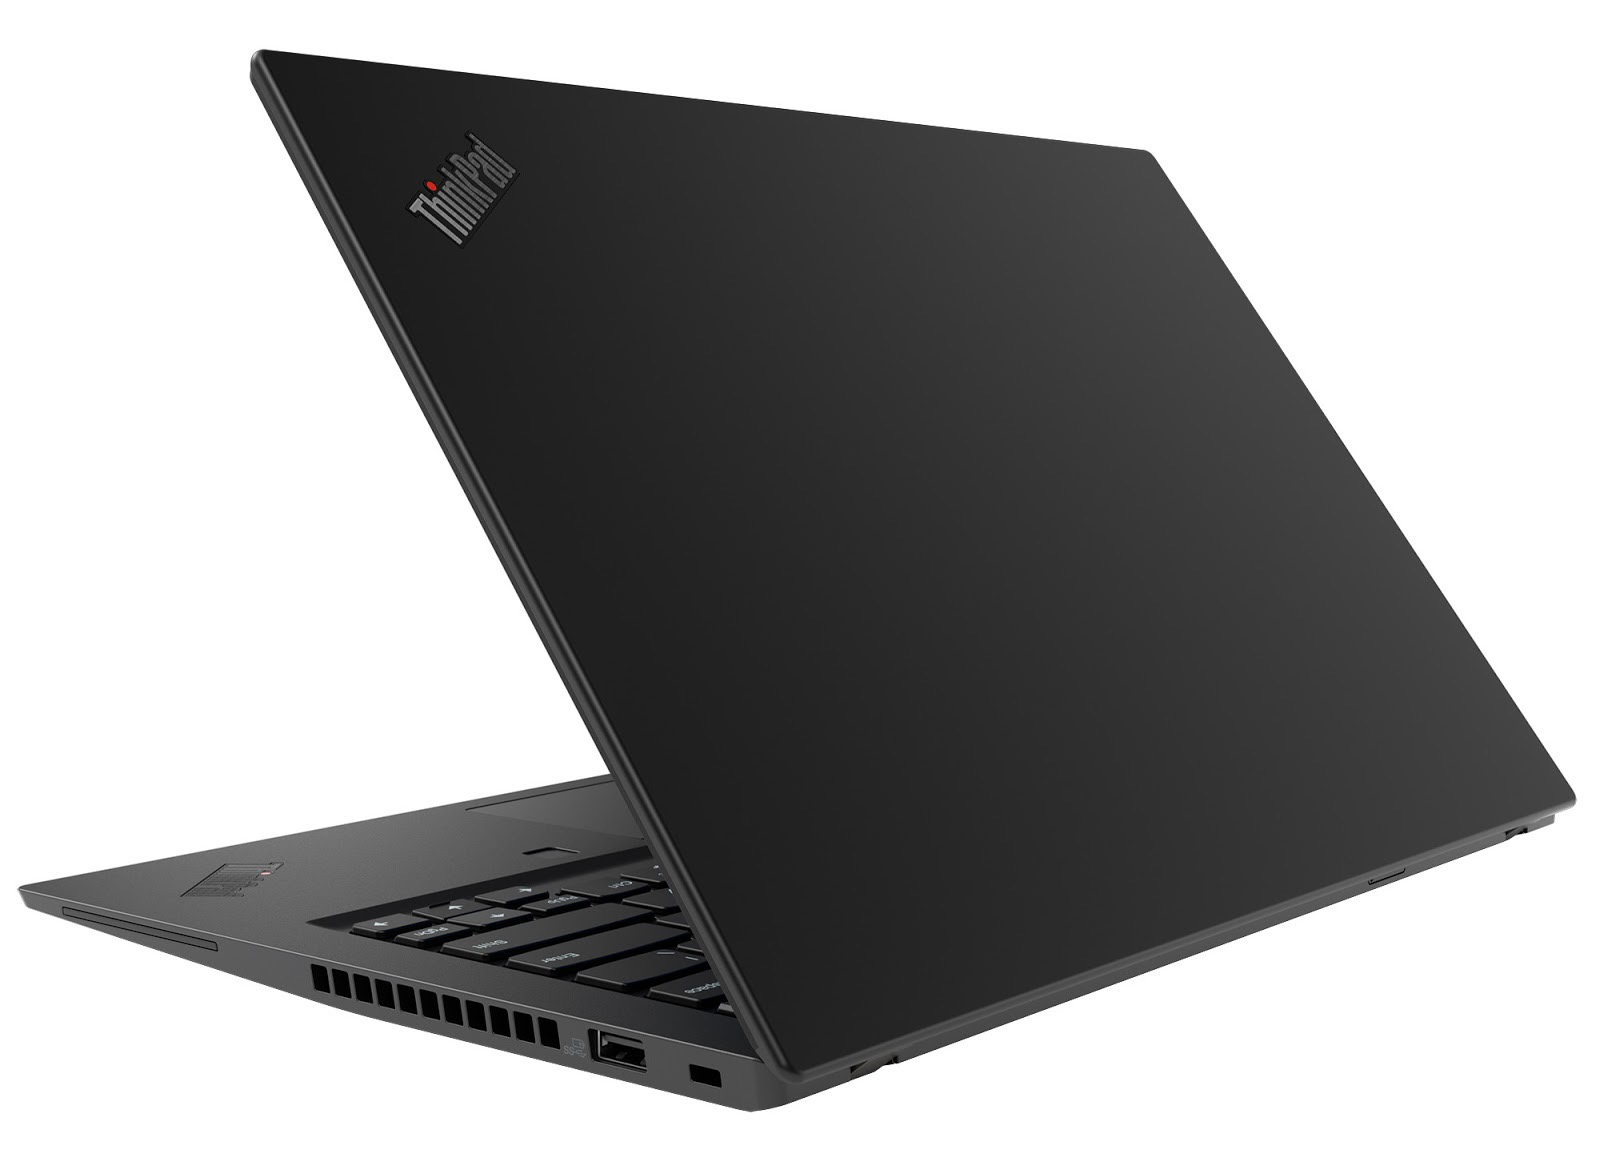 Фото 2. Ноутбук Lenovo ThinkPad T14s Gen 1 Black (20T00012RT)